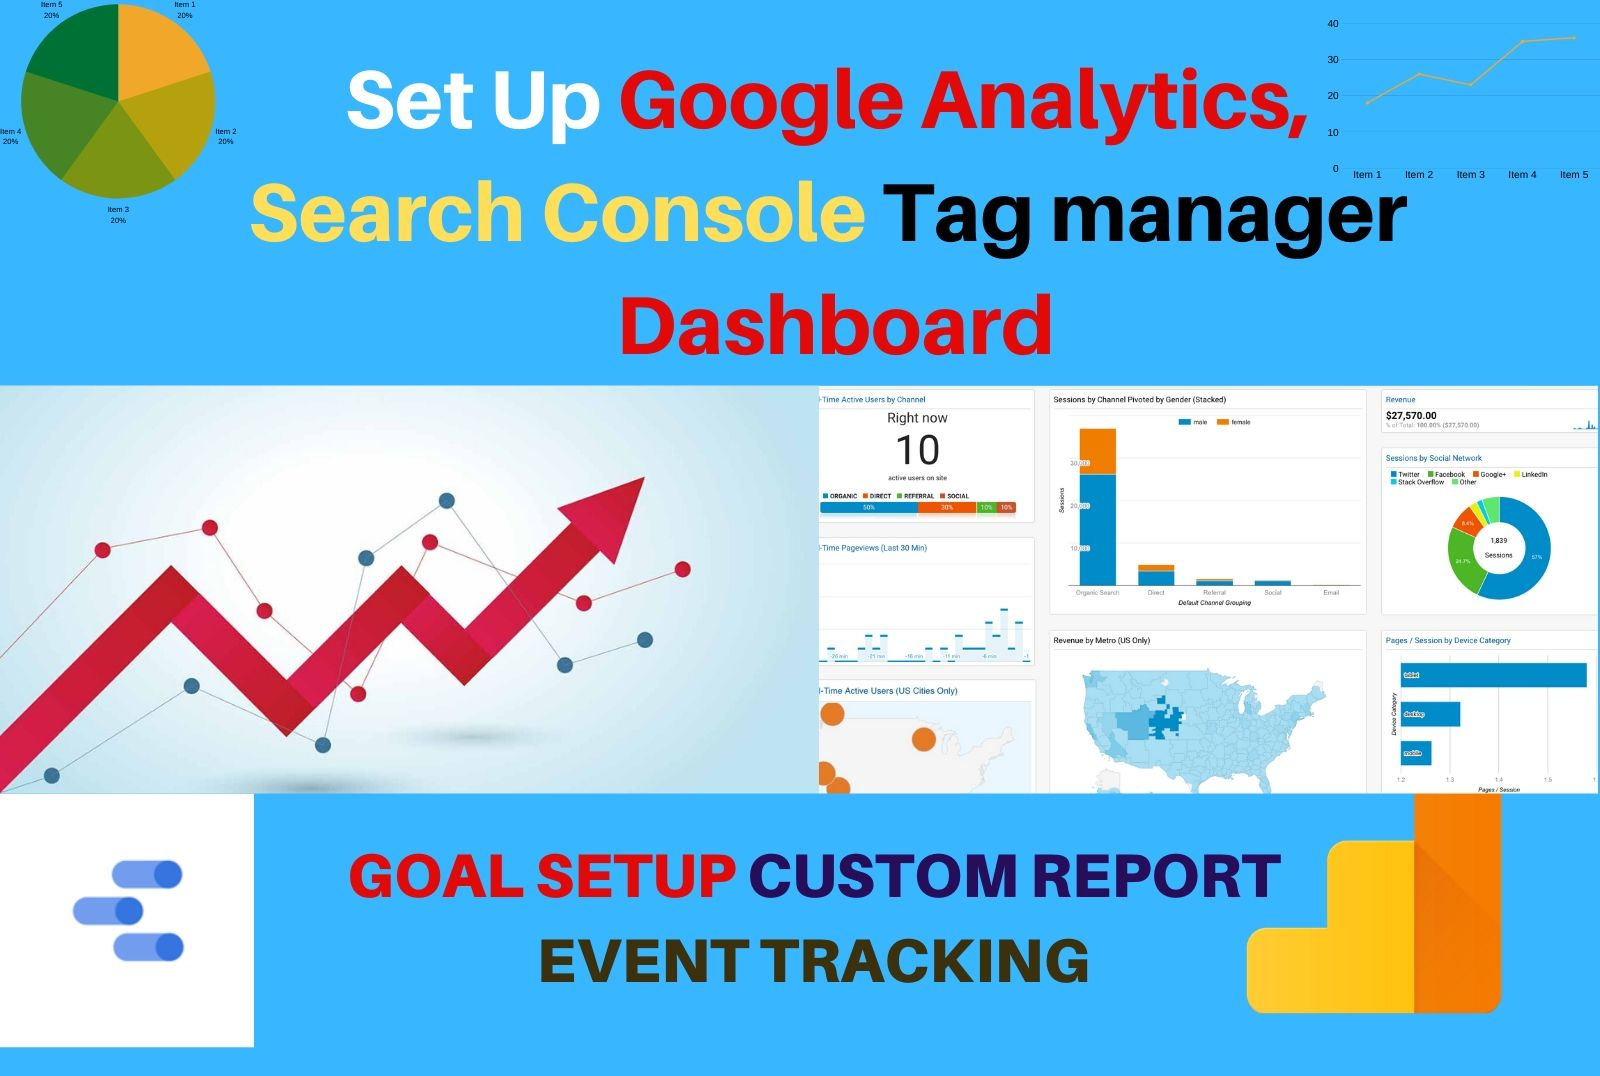 Set Up Google Analytics With Tag Manager And Search Console For